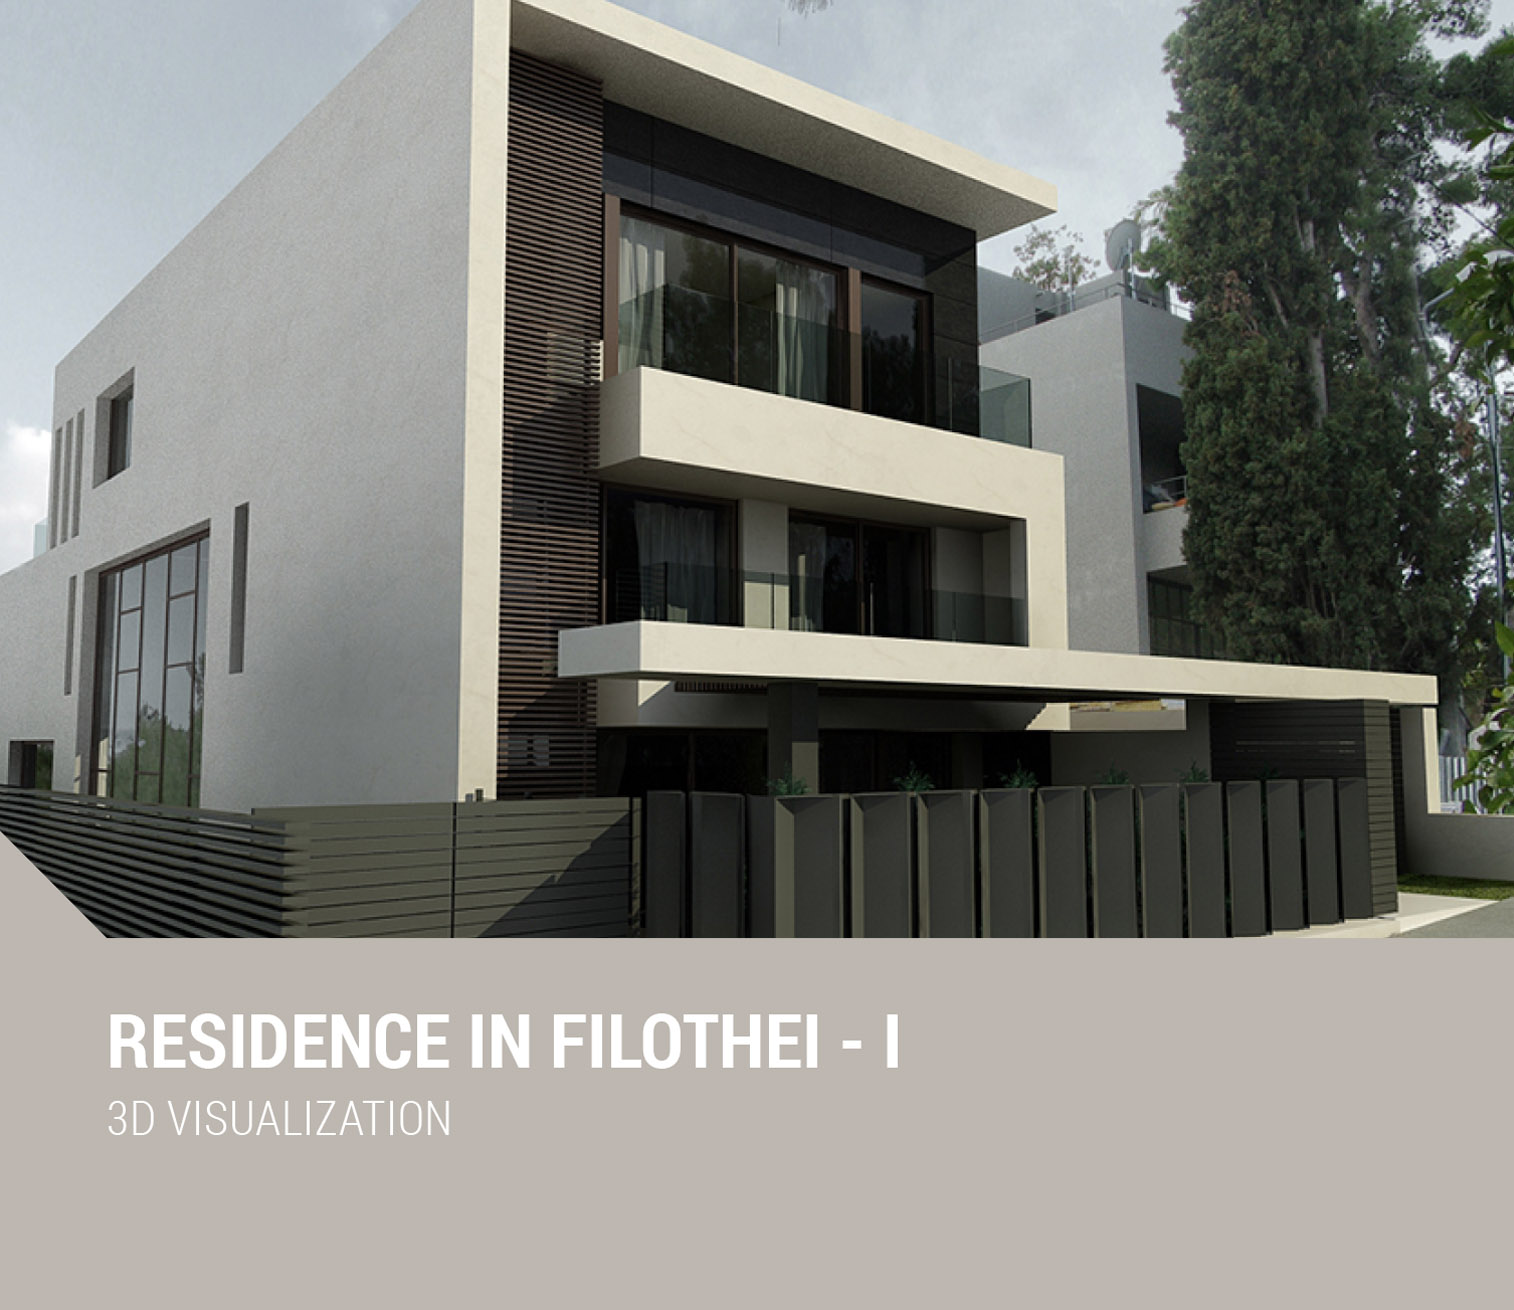 Schema Dimitra Chrona designer, creative director, architectural, 3D visualization, 3D Rendering, branding websites, digital, graphic design, interior design, real estate, luxury property, staging, museum, virtual, art, brochures, exhibitions, logotype, logo, Canada Quebec Montreal Athens Greece schema design filothei residence i small.jpg